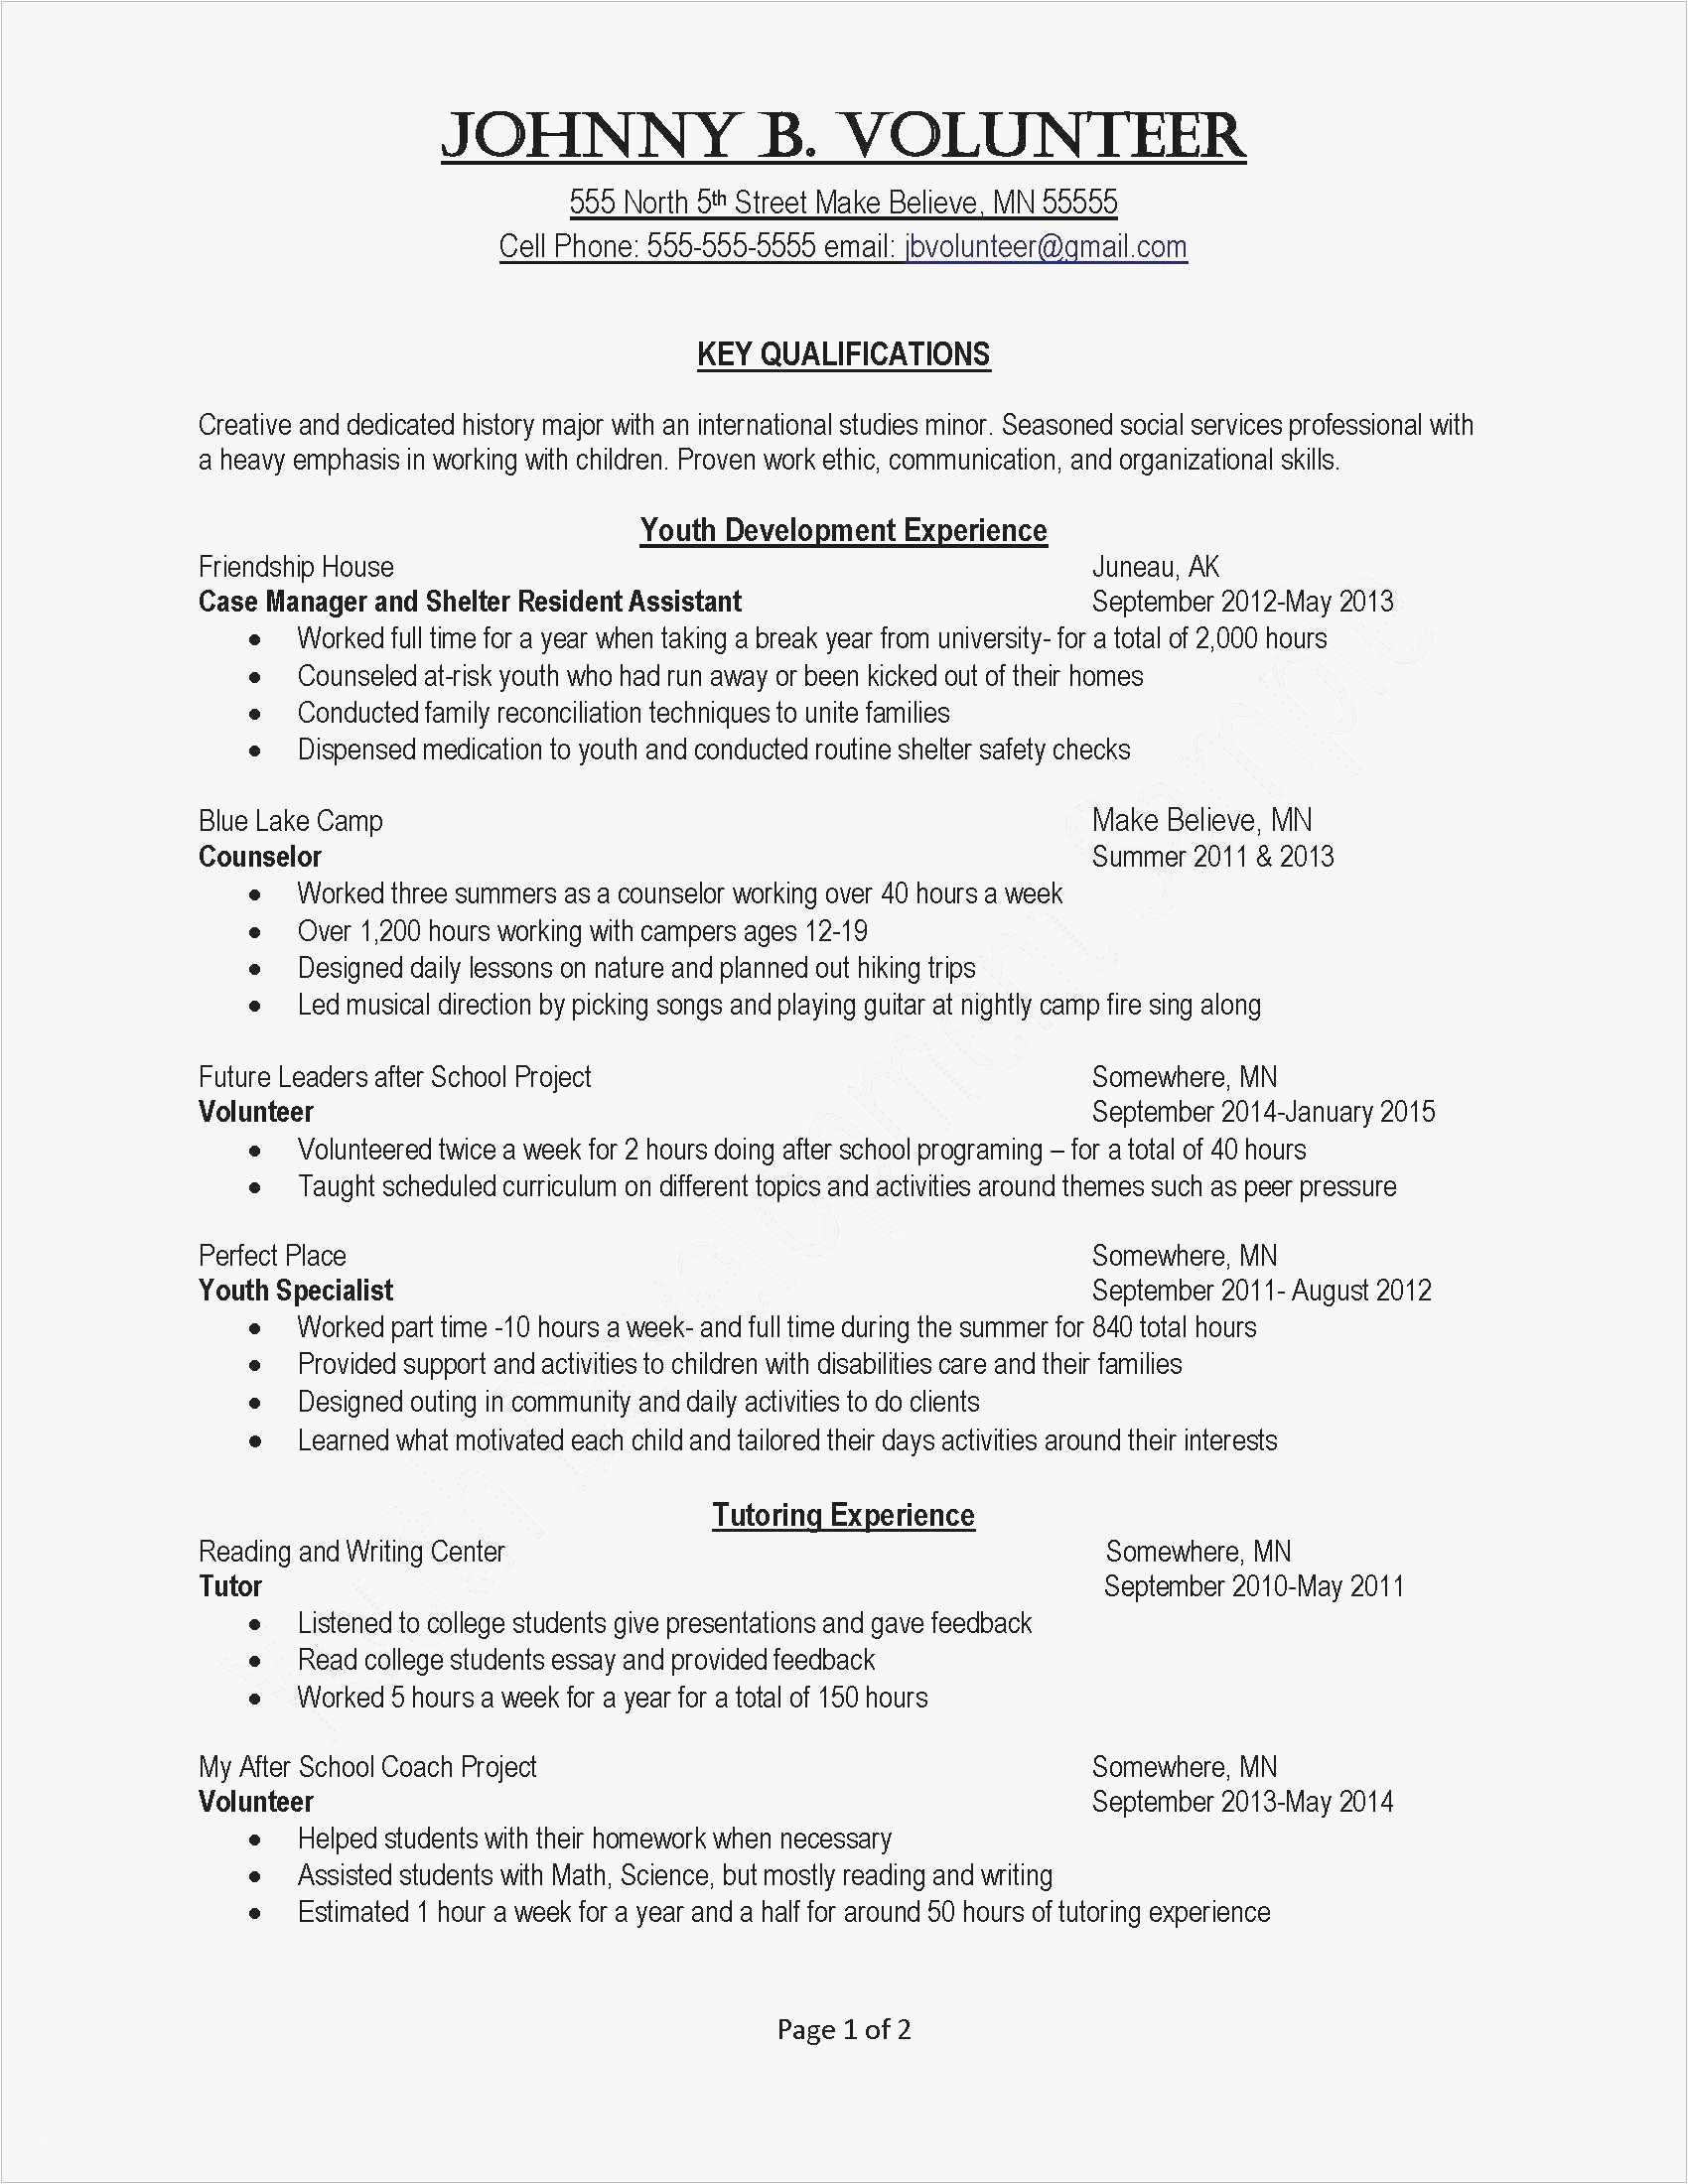 free musician resume template example-New Sample Resume Templates Basic Resumes Skills Examples Resume Examples 0d Skills Examples for 3-p